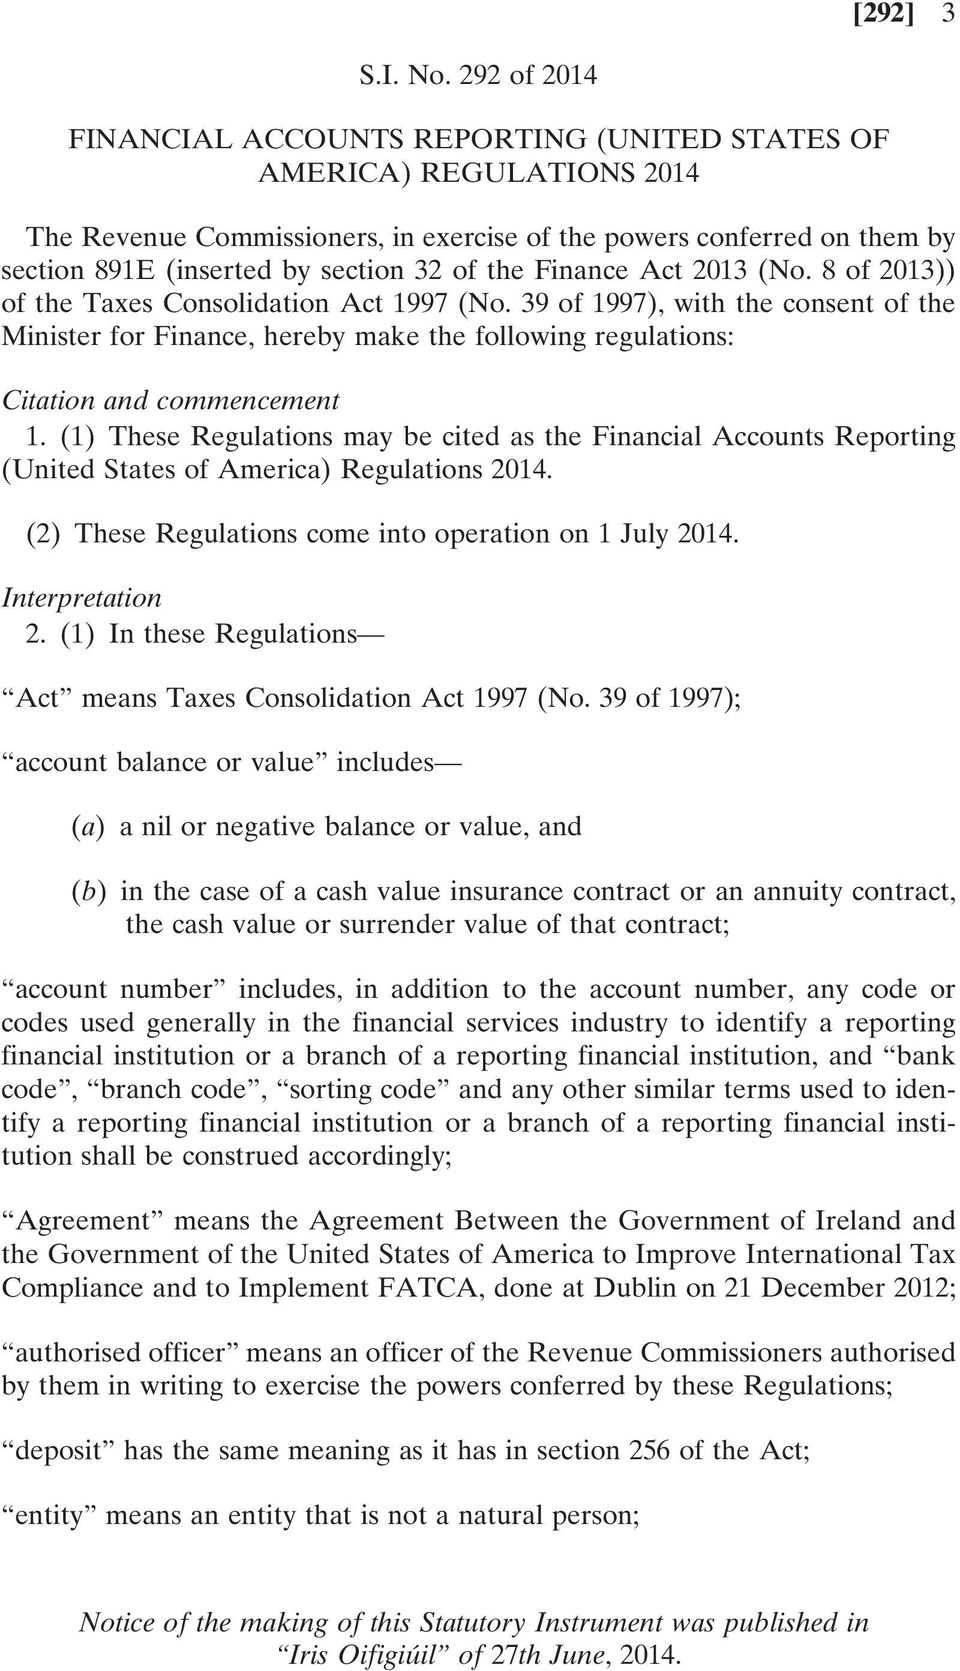 the Finance Act 2013 (No. 8 of 2013)) of the Taxes Consolidation Act 1997 (No.